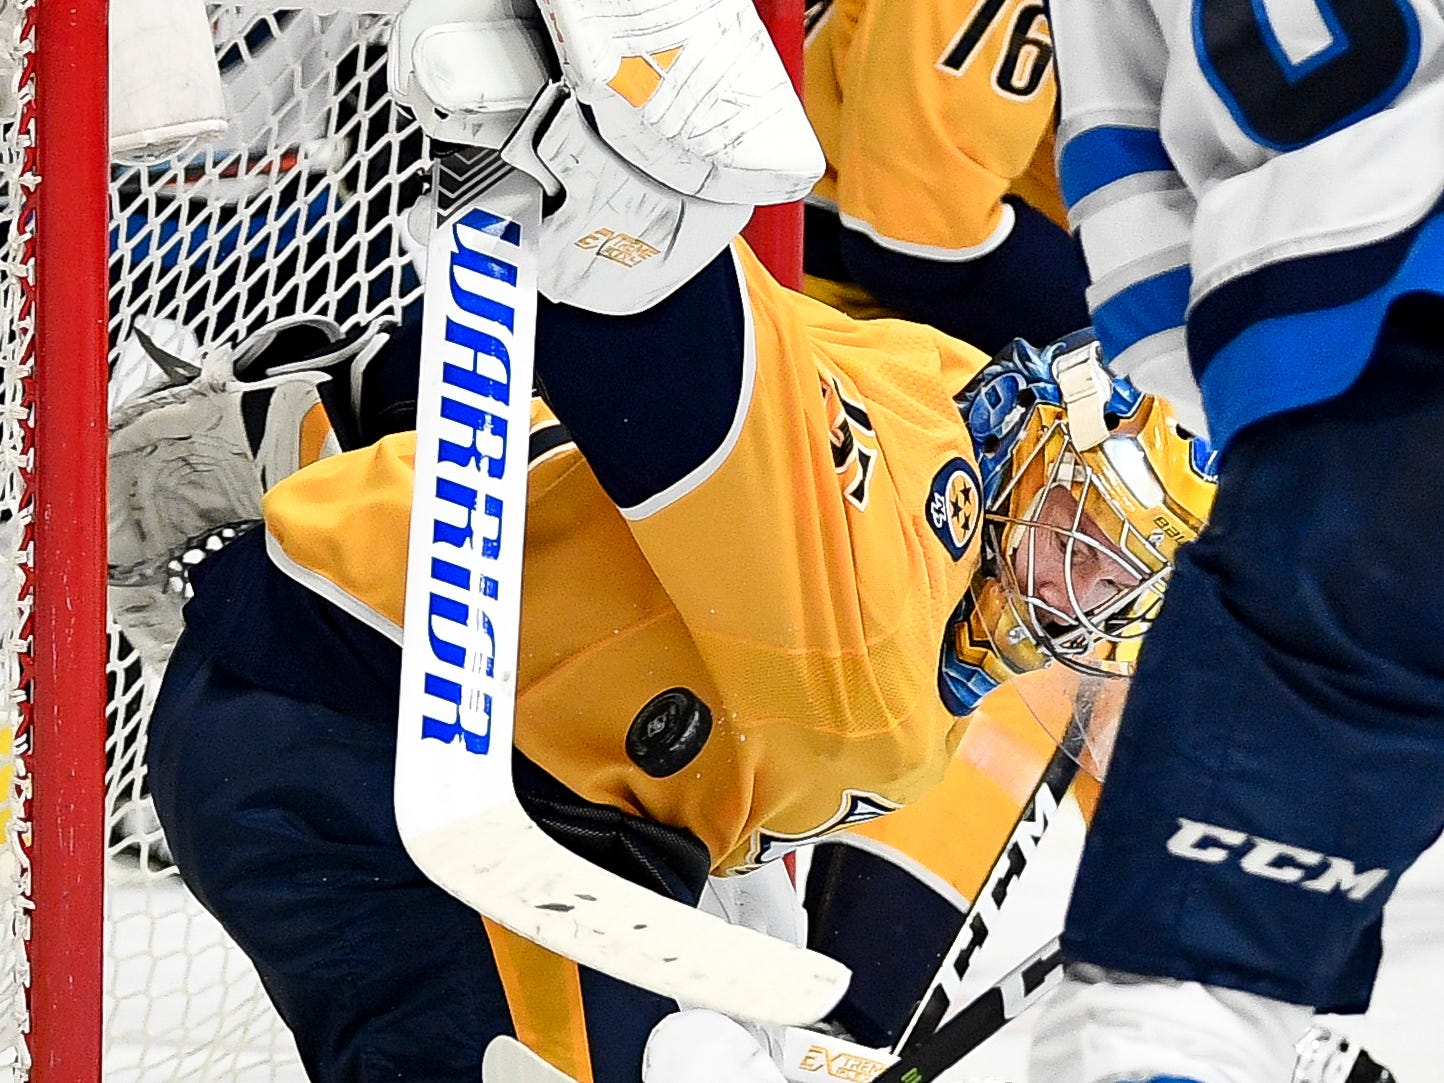 Nashville Predators goaltender Pekka Rinne (35) defends against Winnipeg Jets left wing Kyle Connor (81) during the second period at Bridgestone Arena in Nashville, Tenn., Thursday, Jan. 17, 2019.